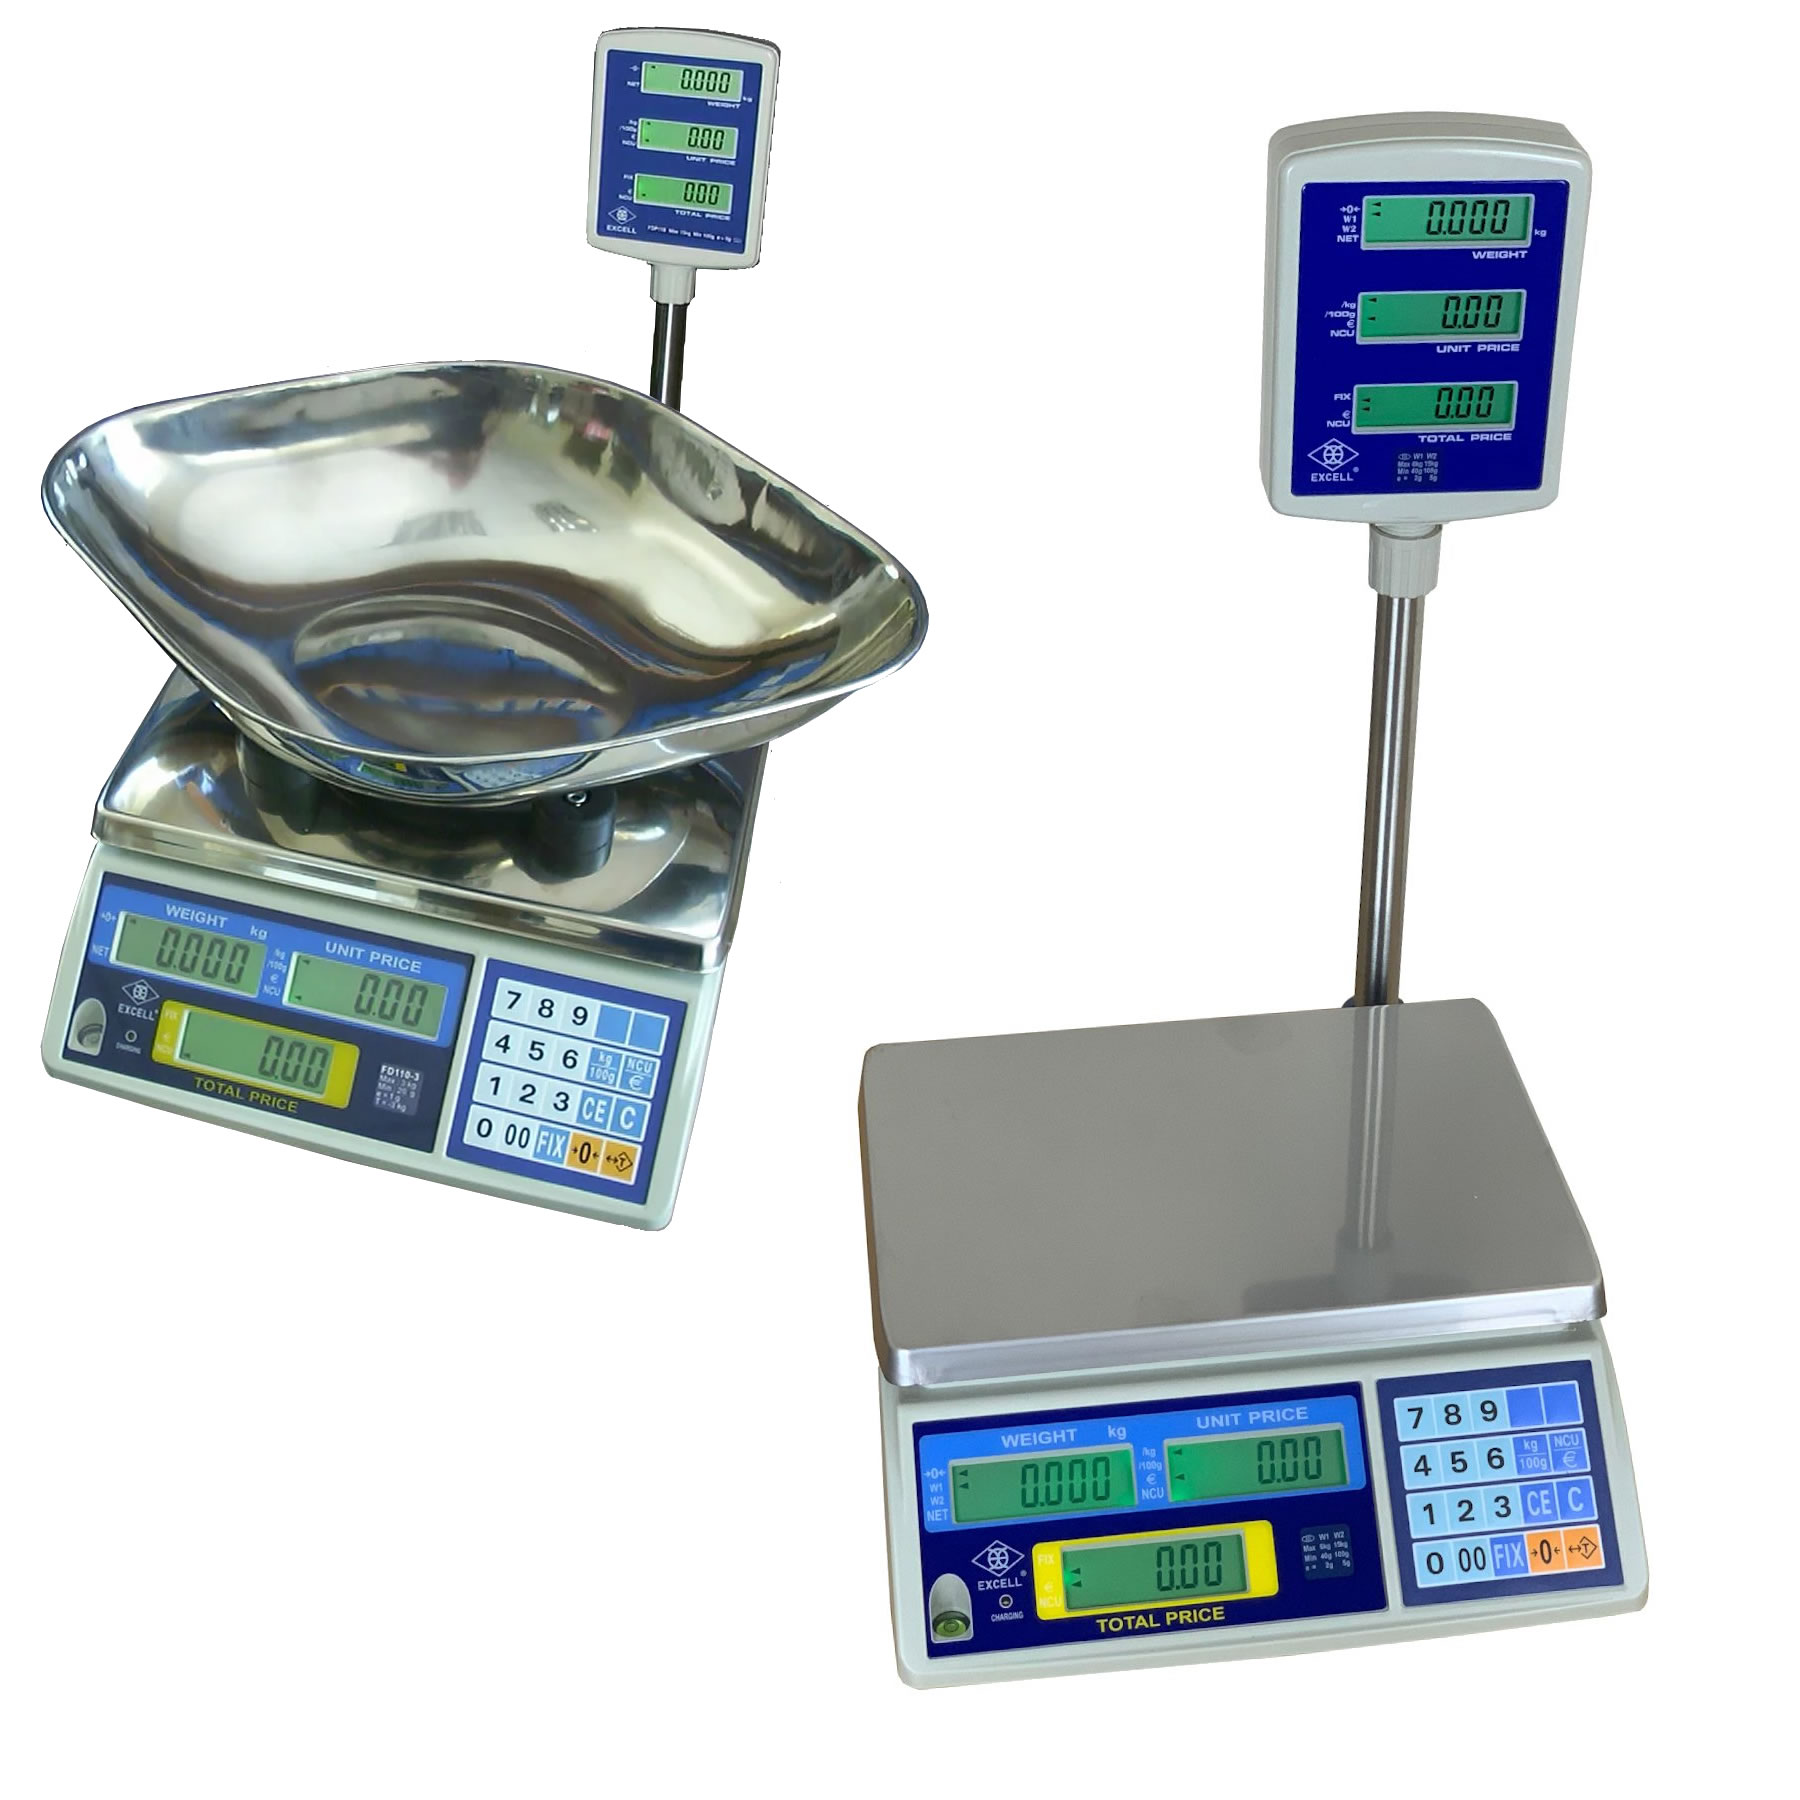 FD3 Retail Scale with Pole Display